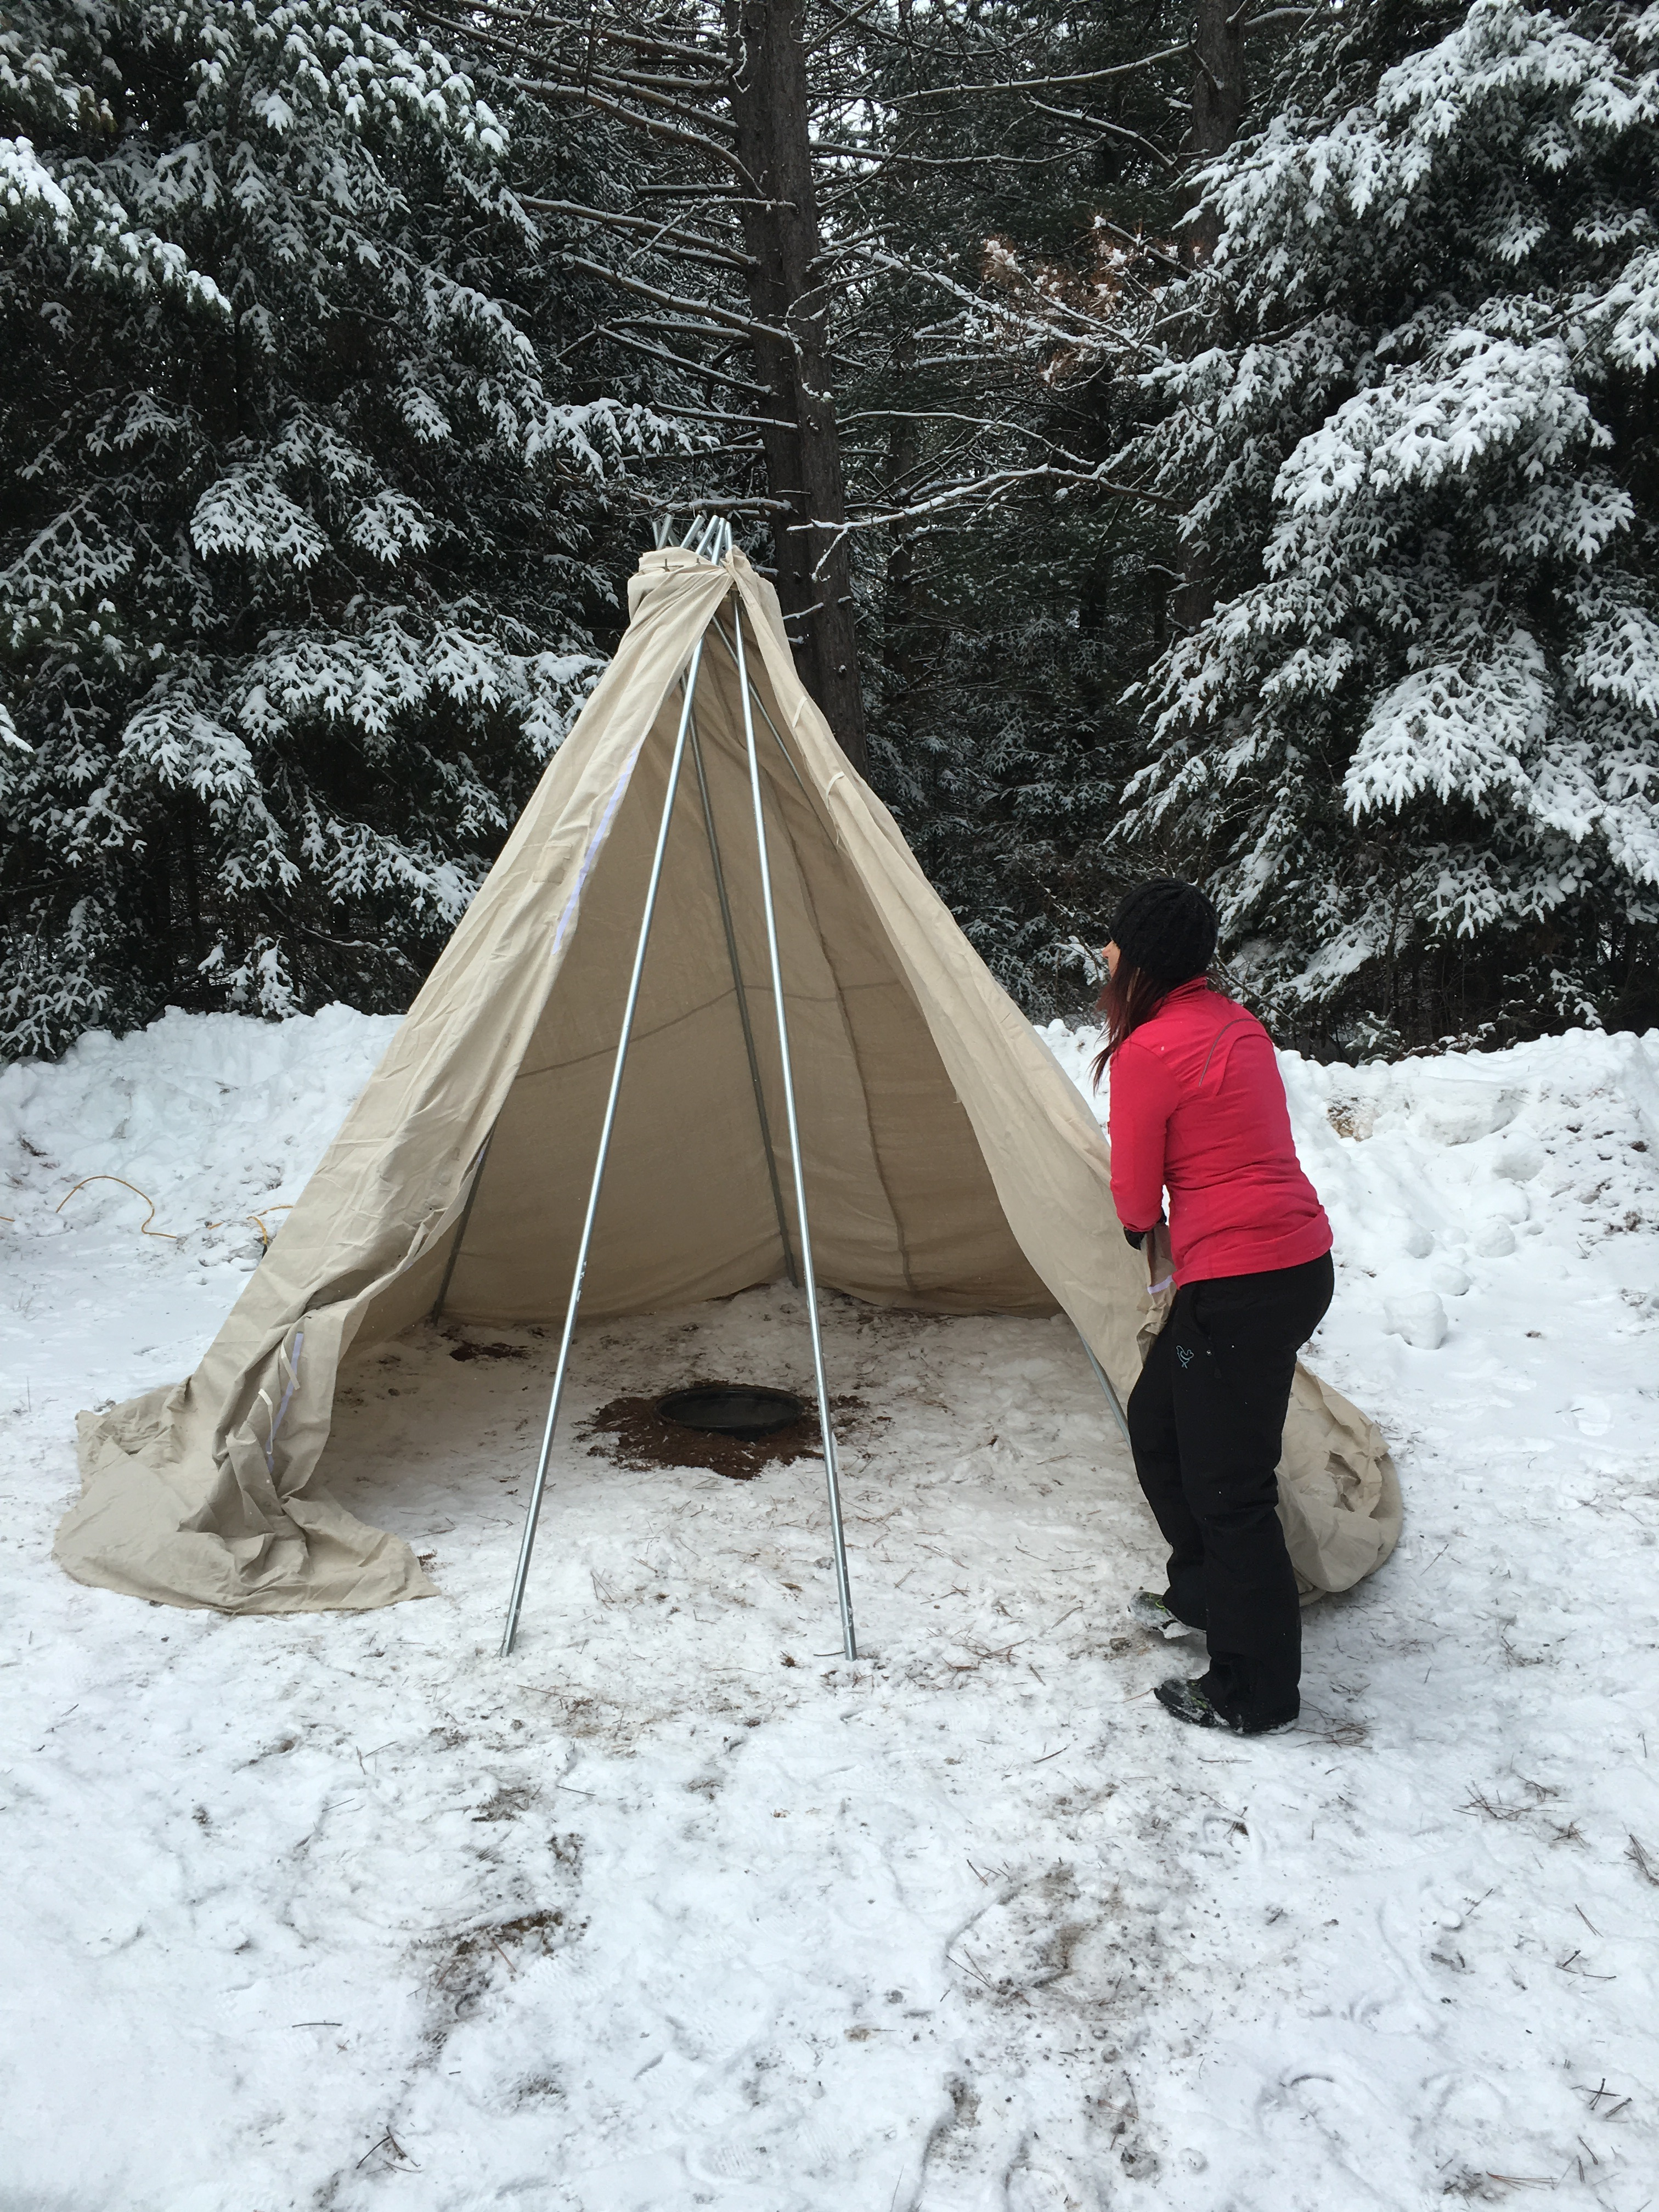 How to build a Tipi! CamperChristina style